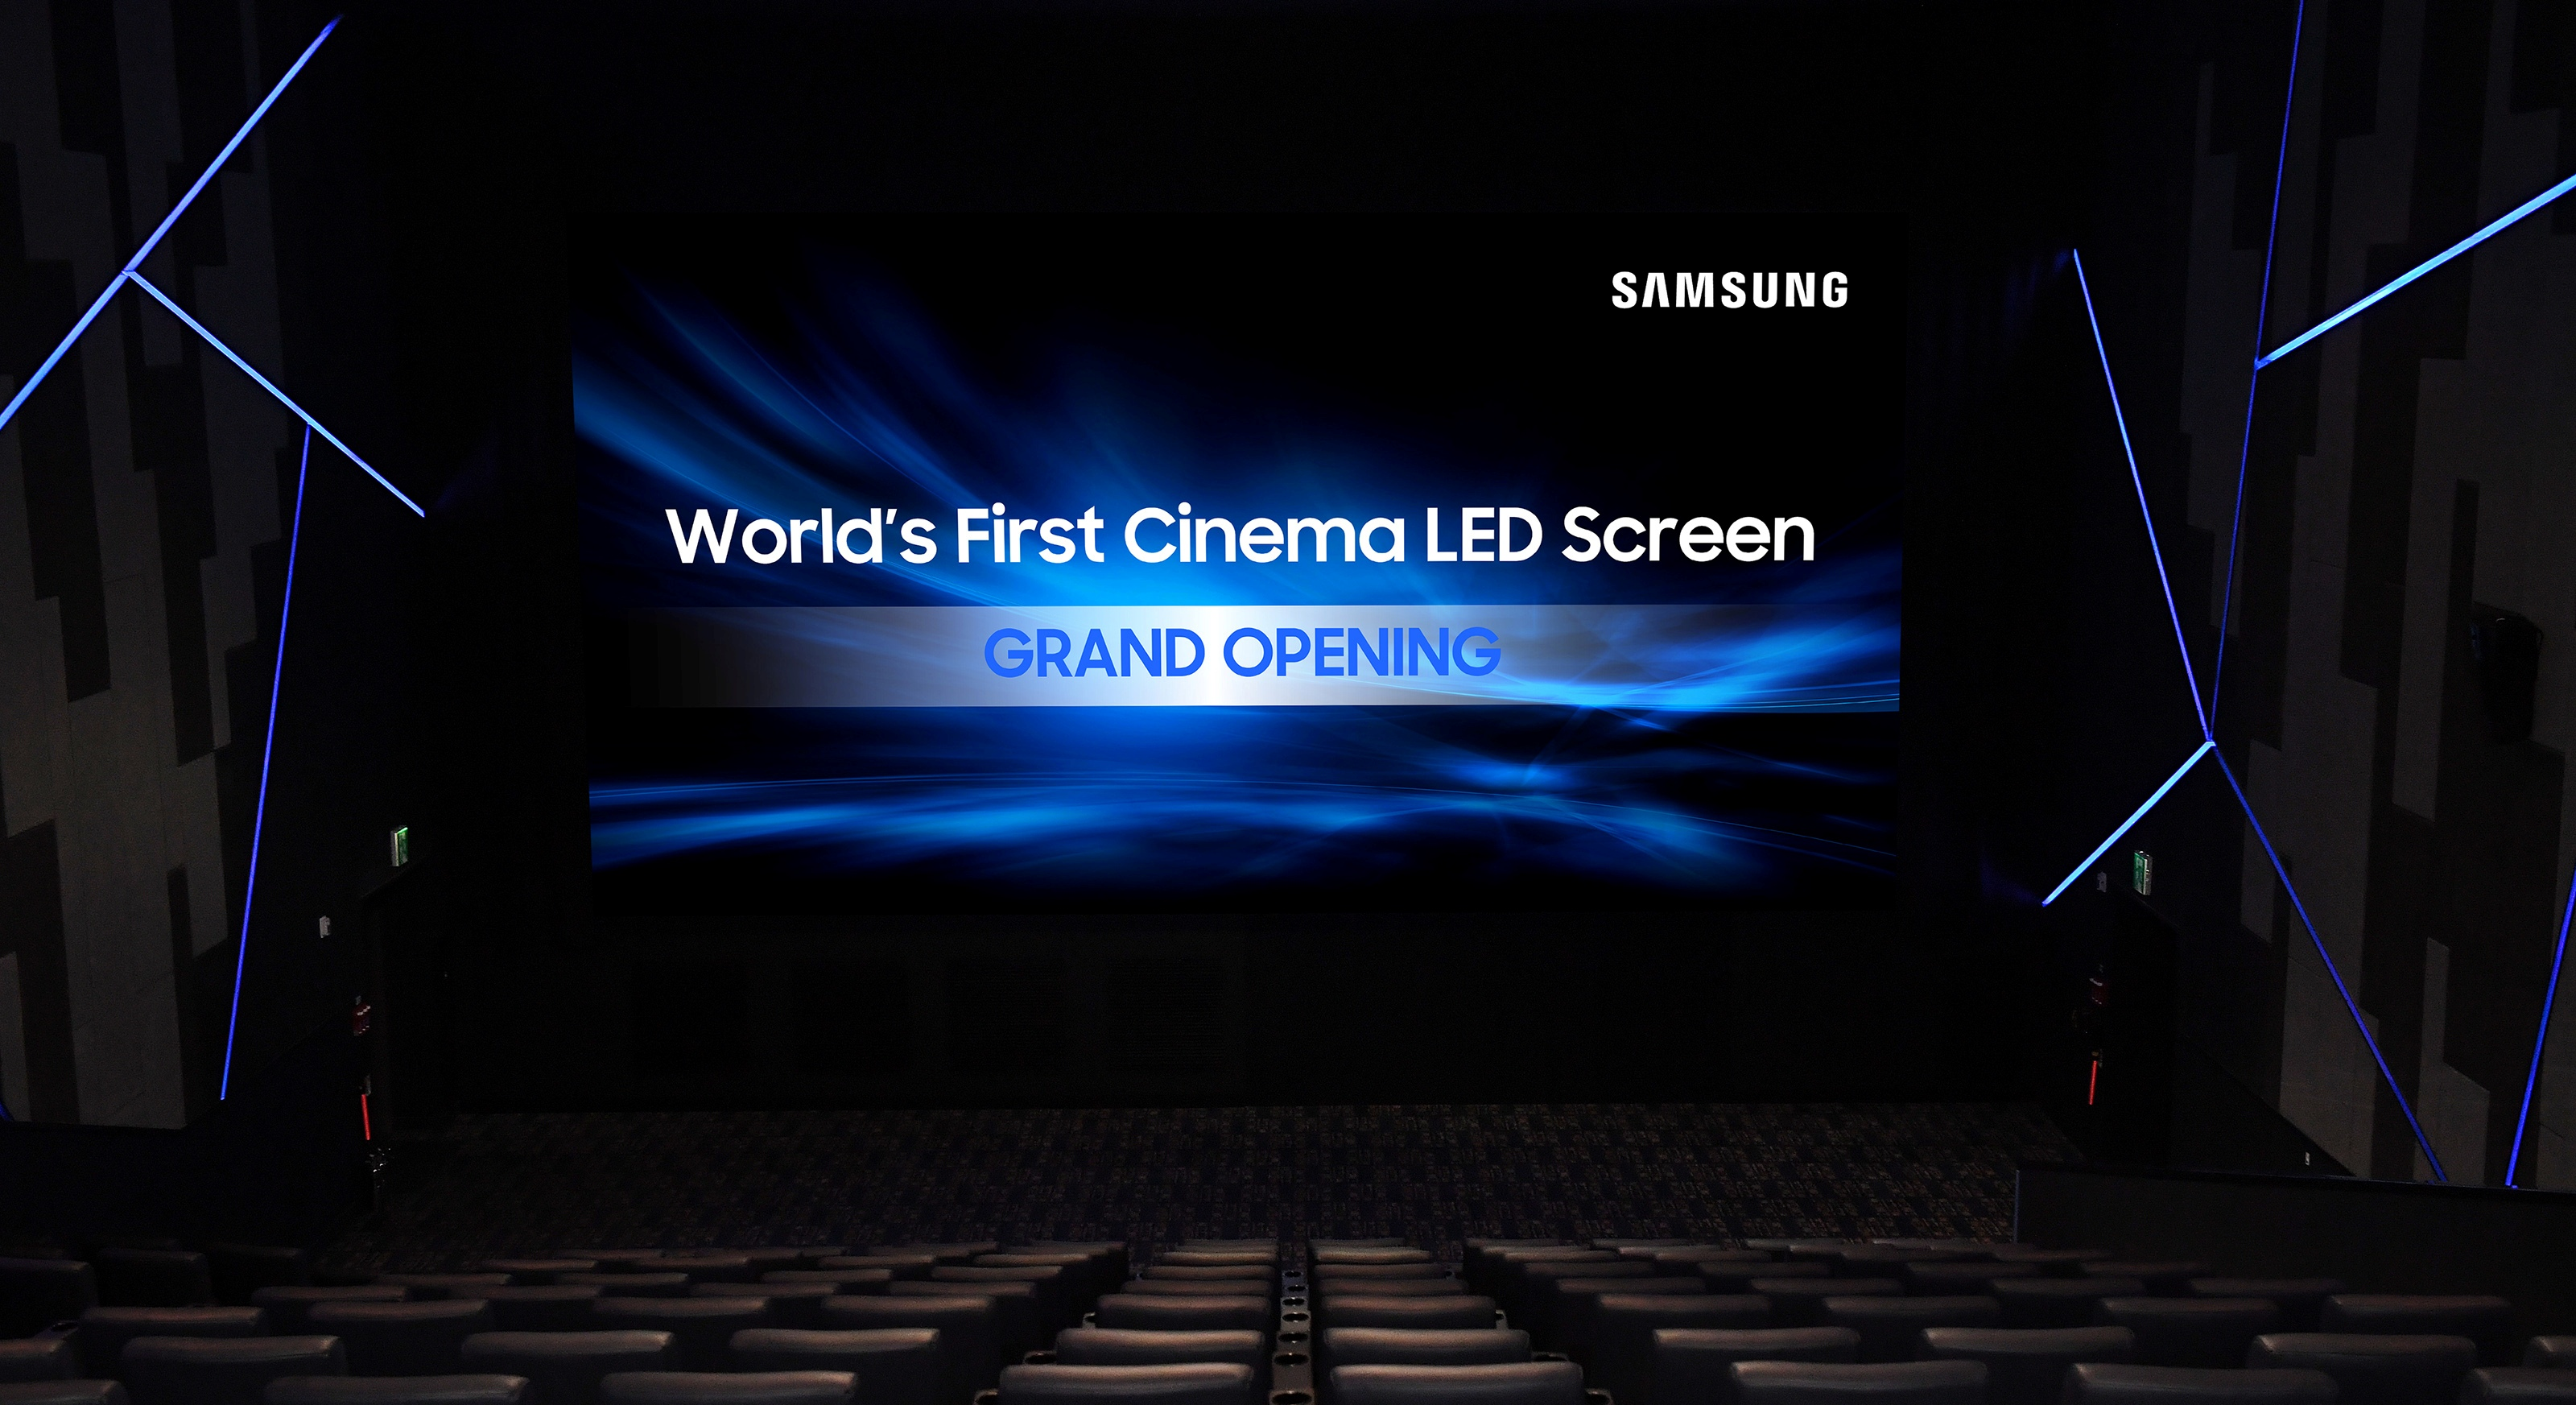 Samsung brings LED displays to European movie theaters, plans U.S. launch in 2018